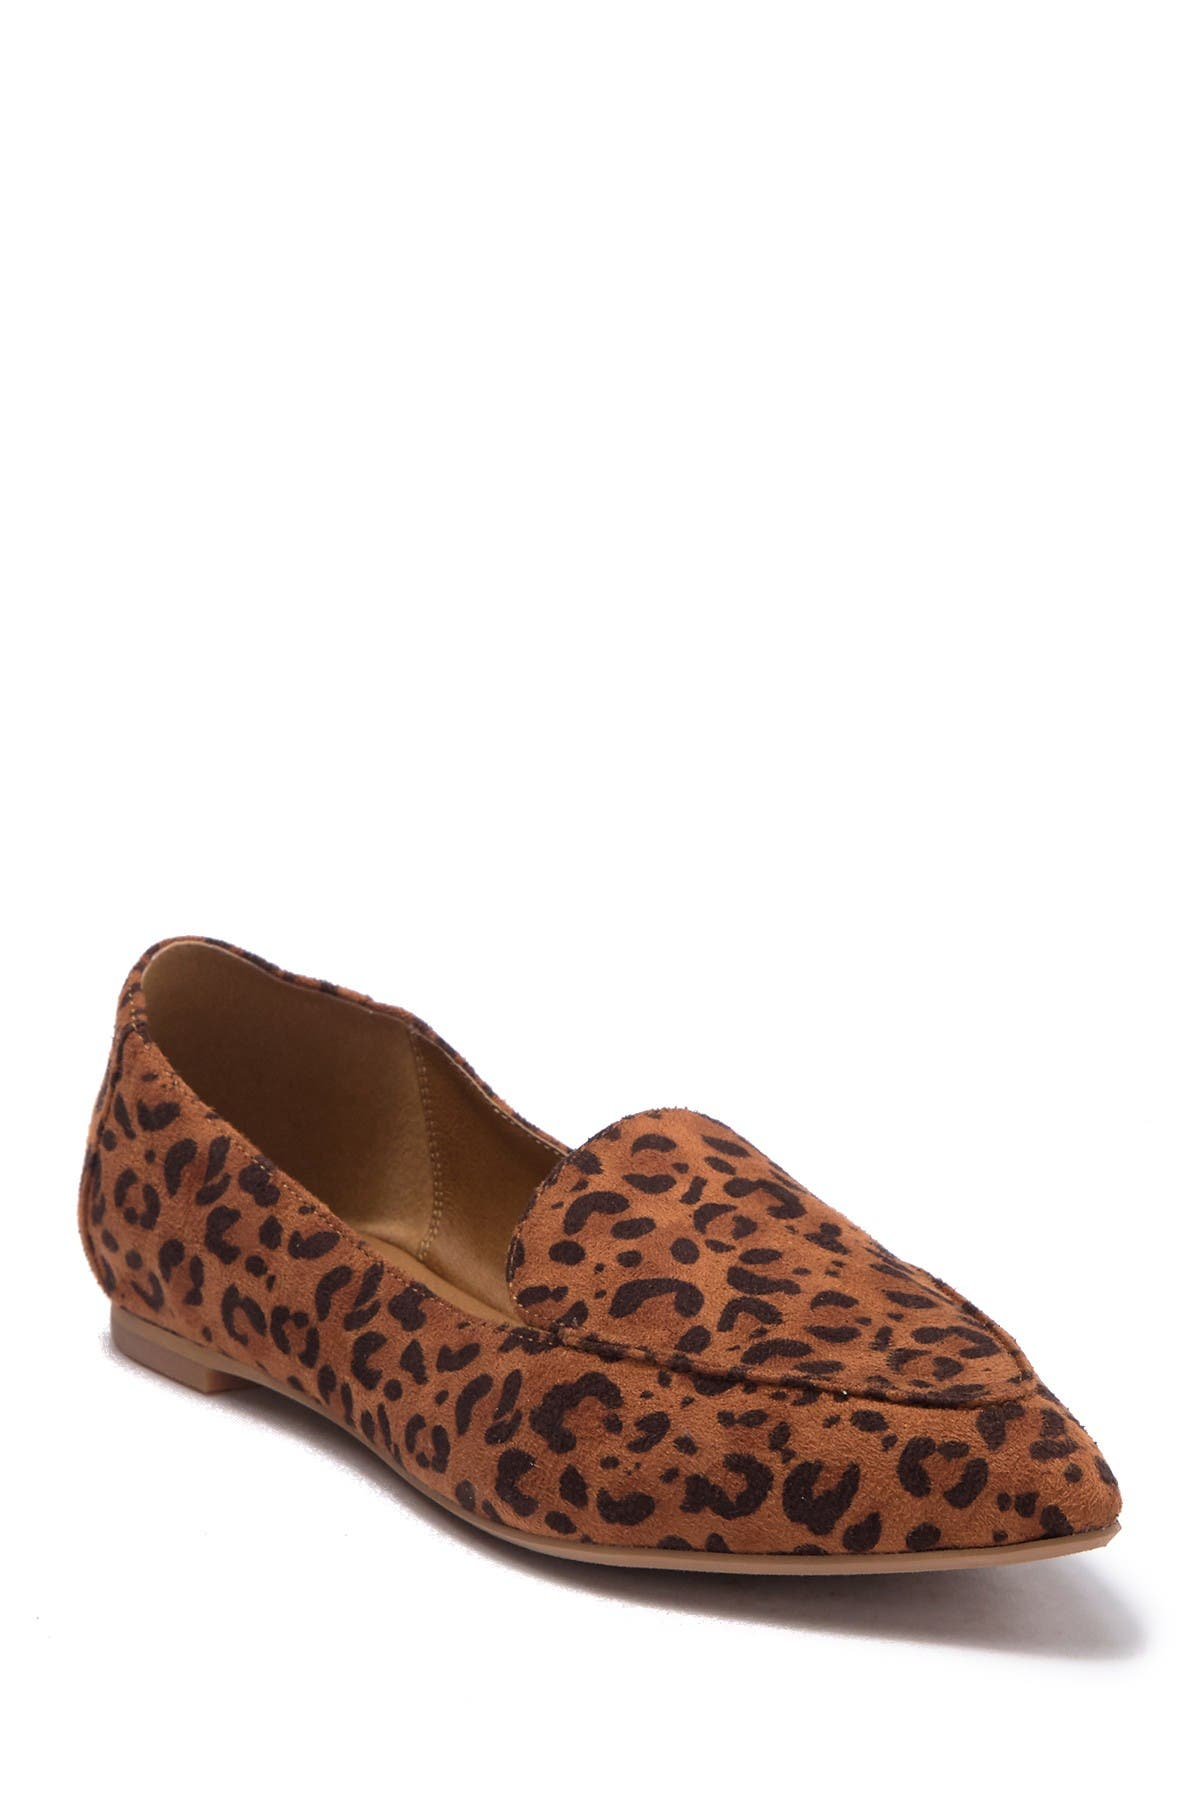 Abound | Kali Pointed Toe Flat - Wide